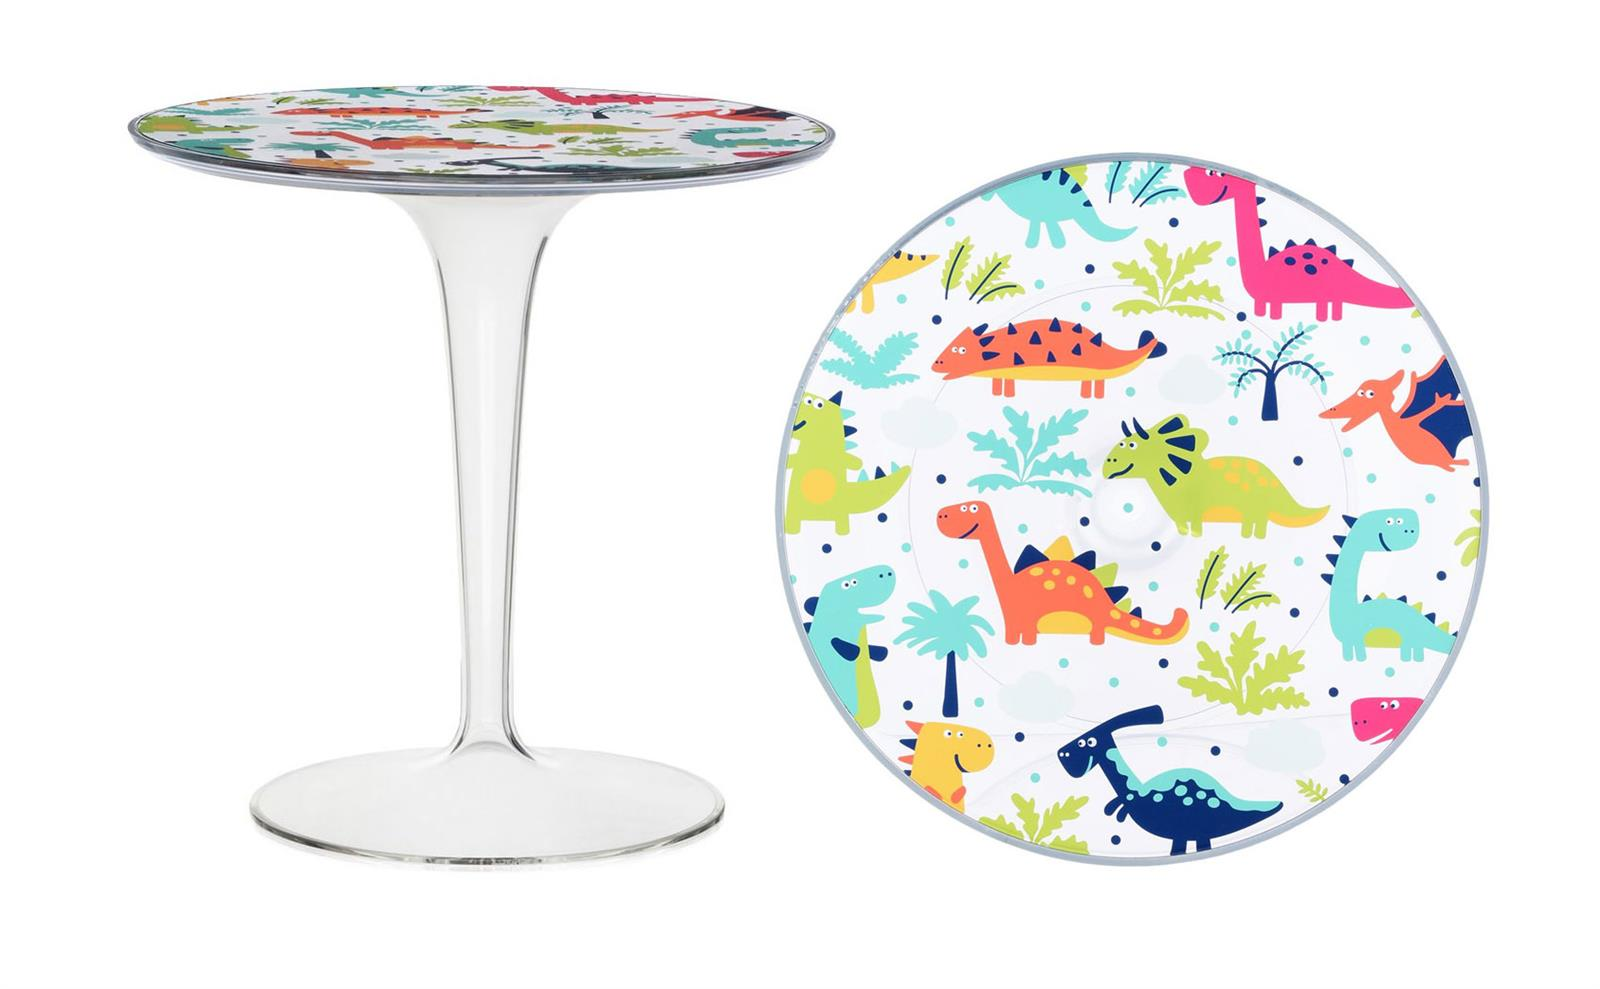 Kartell Tip top for kids dinosauri small table online sale on ...